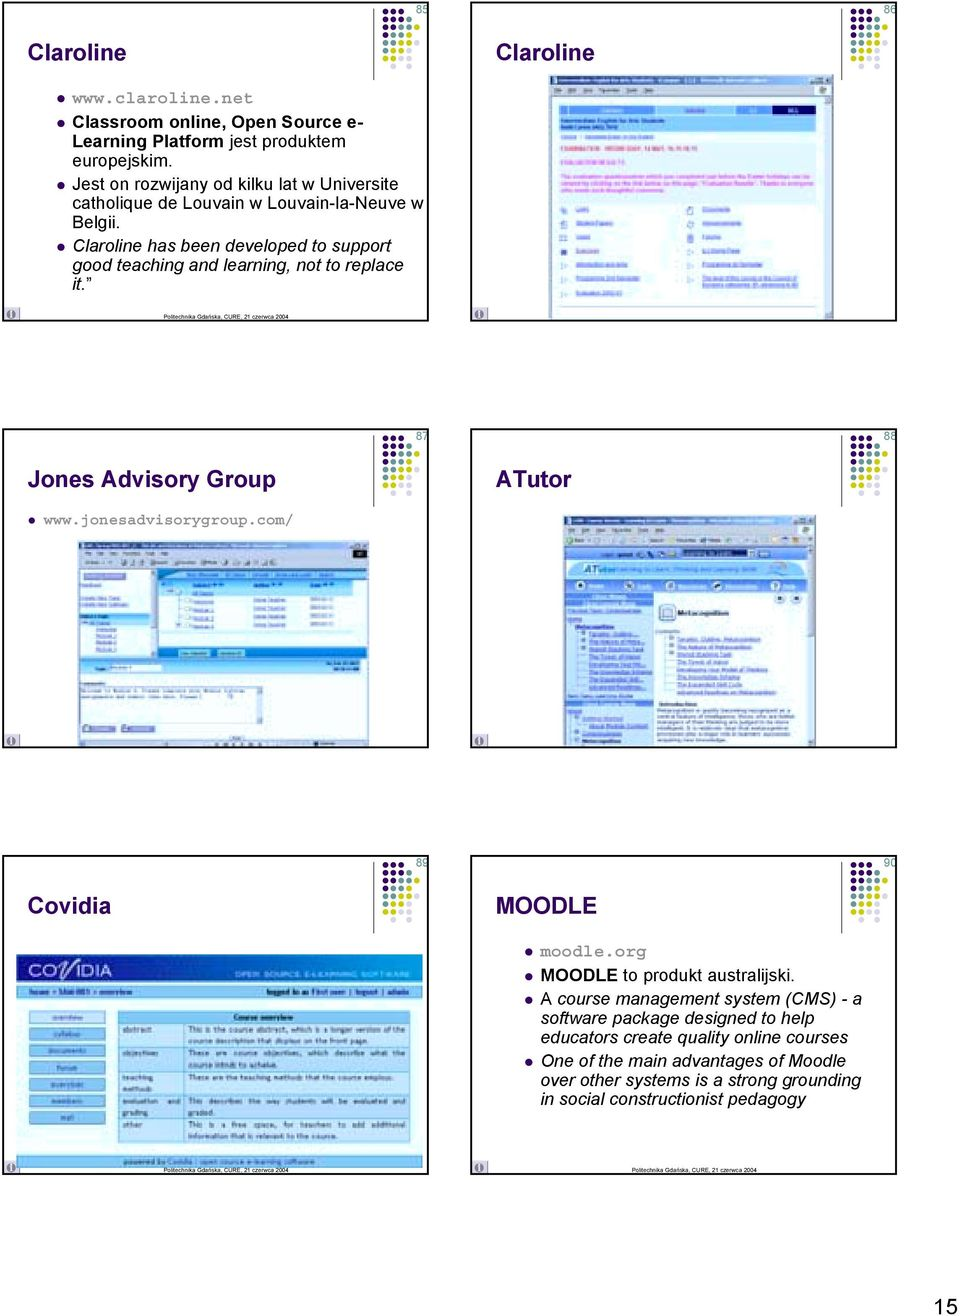 ! Claroline has been developed to support good teaching and learning, not to replace it. 87 88 Jones Advisory Group ATutor! www.jonesadvisorygroup.